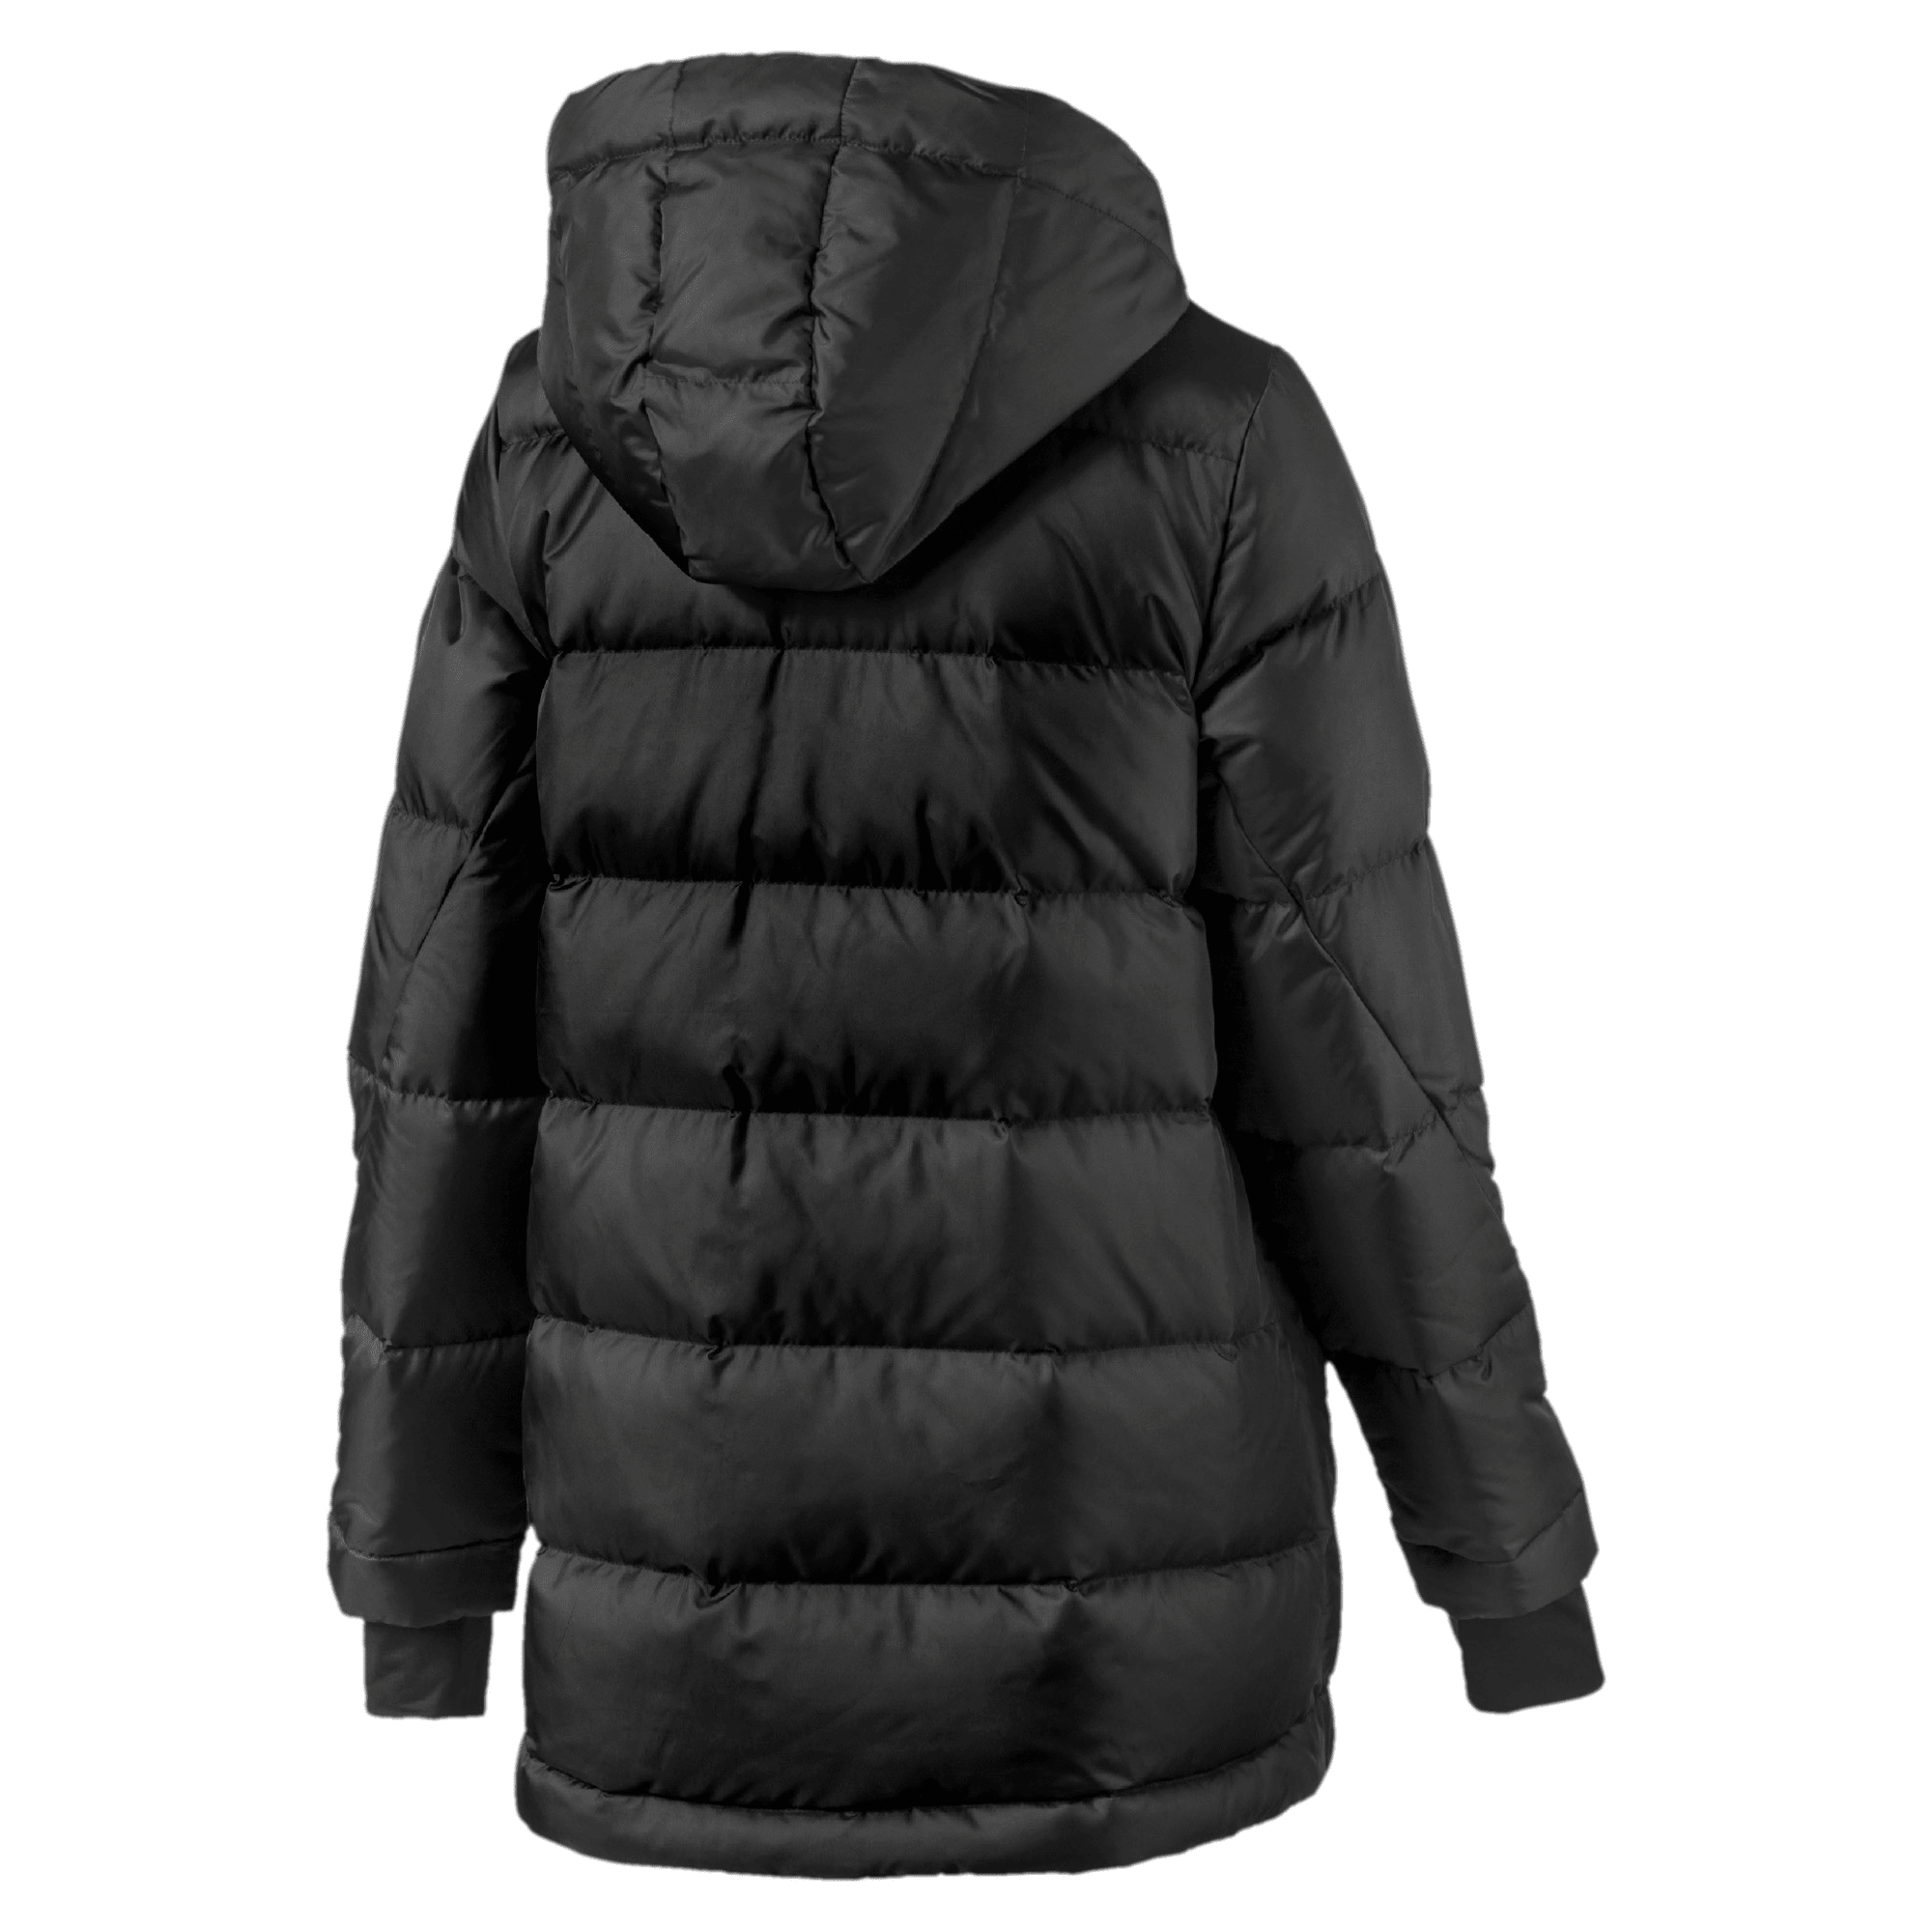 Thumbnail 2 of Scuderia Ferrari Women's Down Jacket, Puma Black, medium